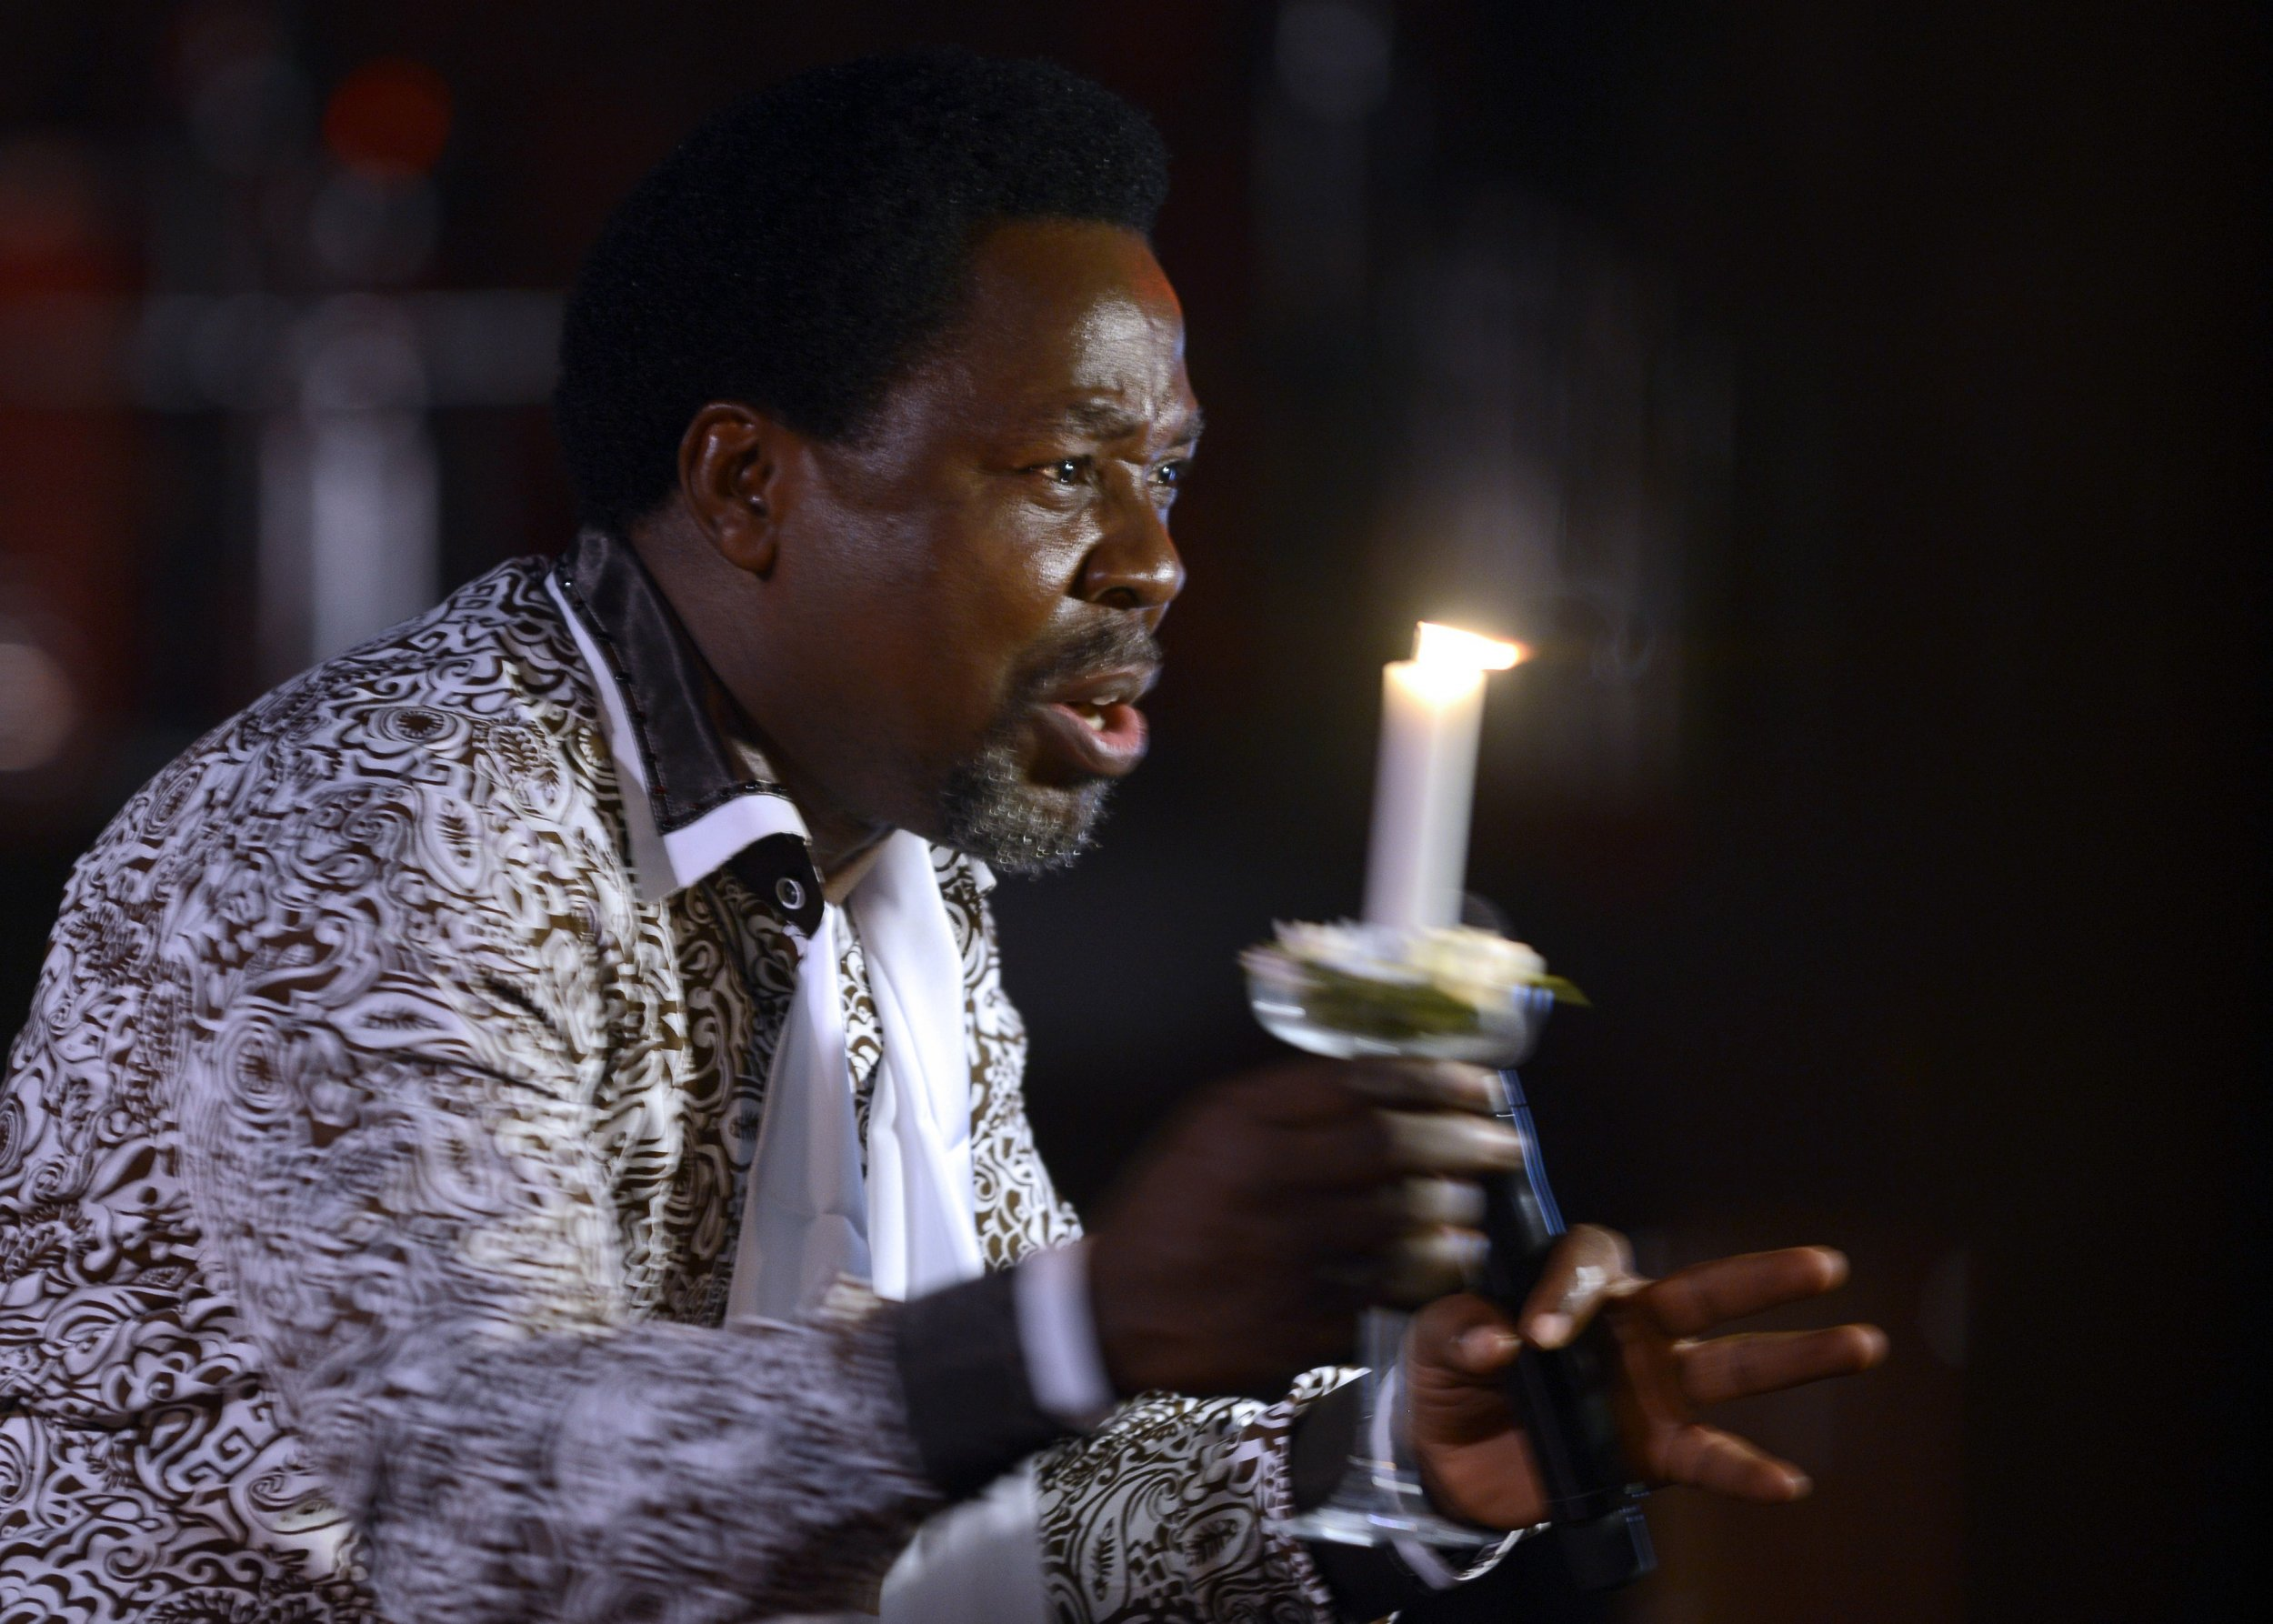 Nigerian pastor TB Joshua speaks at a memorial service.